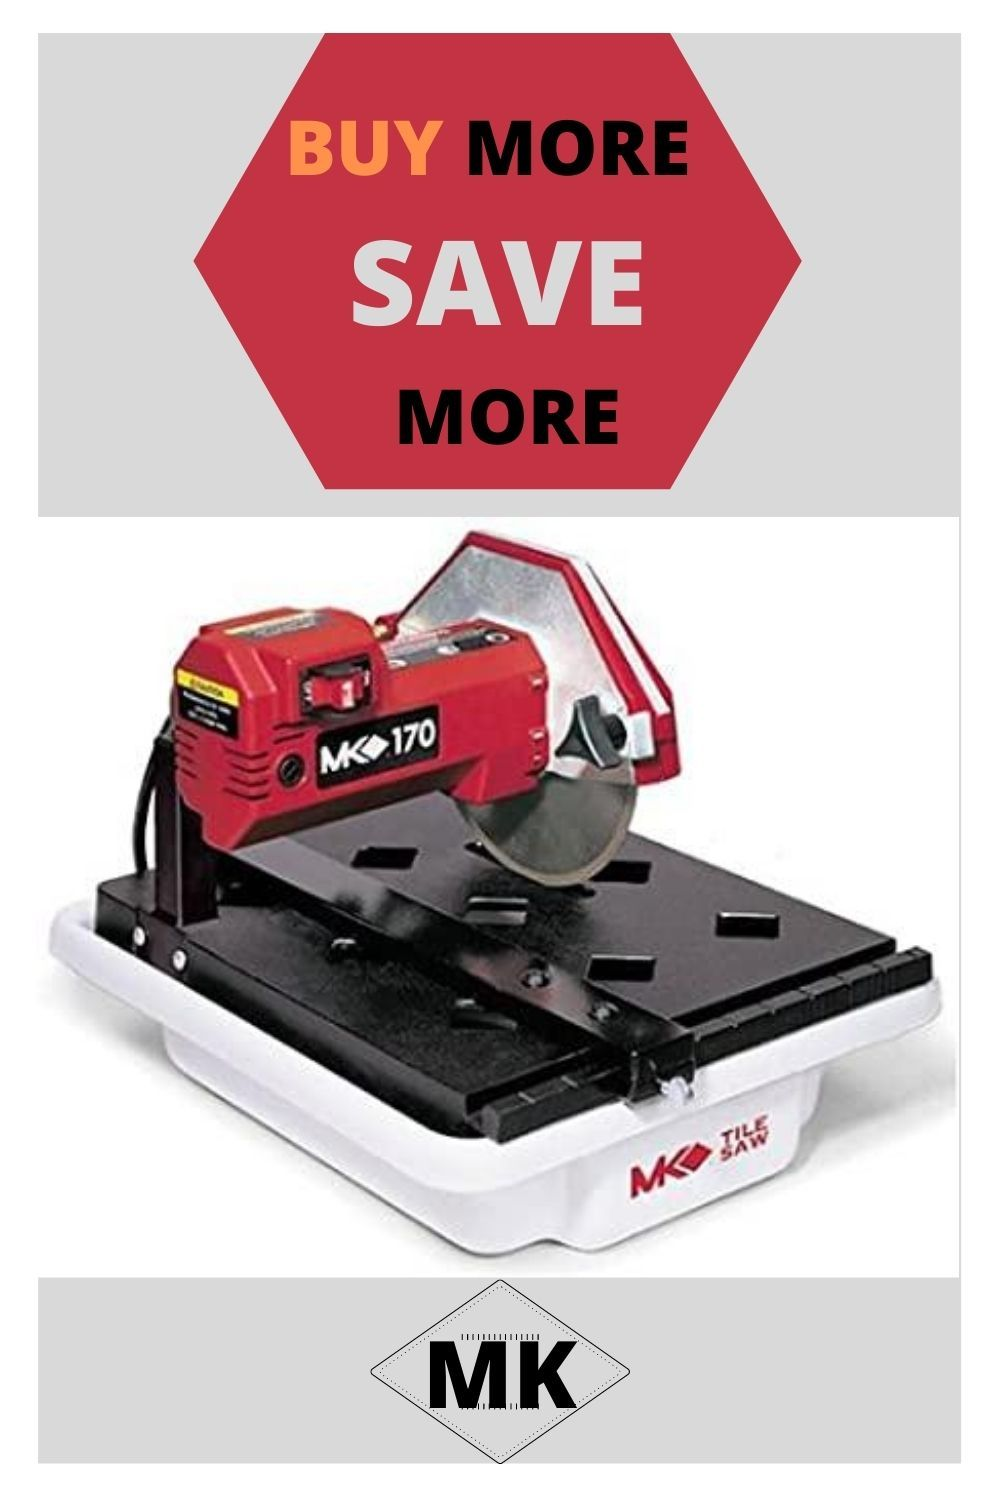 Mk Diamond 157222 Mk 170 1 3 Horsepower 7 Inch Bench Wet Tile Saw Mk In 2020 Tile Saw Tile Saws Wet